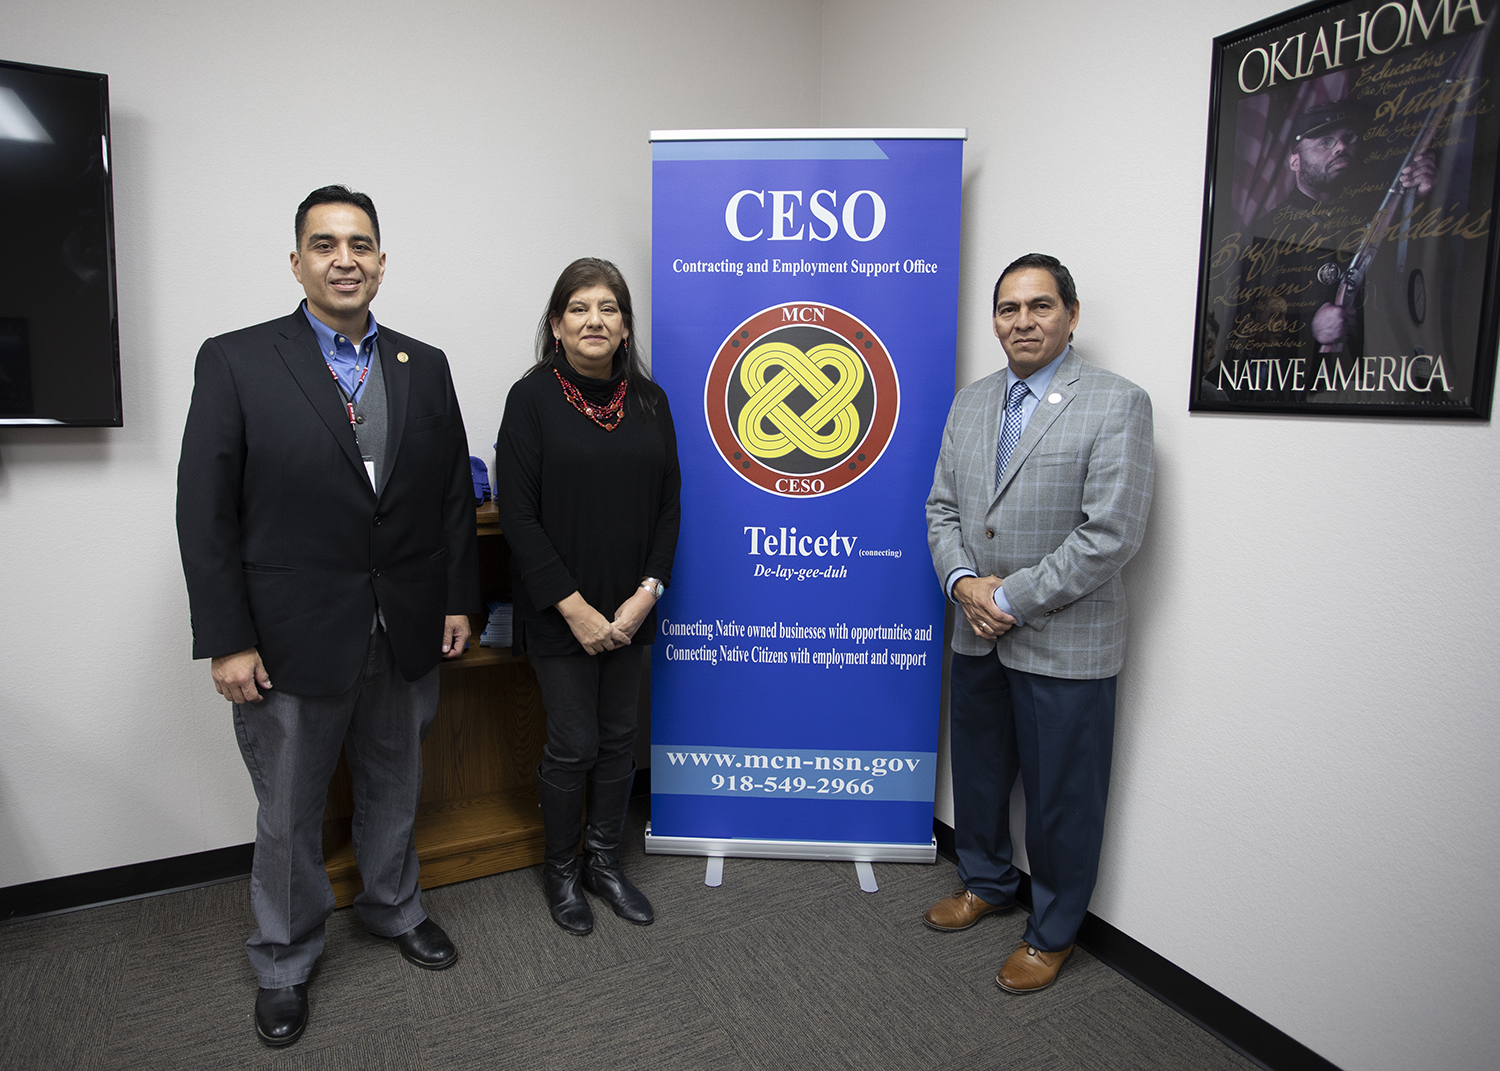 CESO holds open house for new location